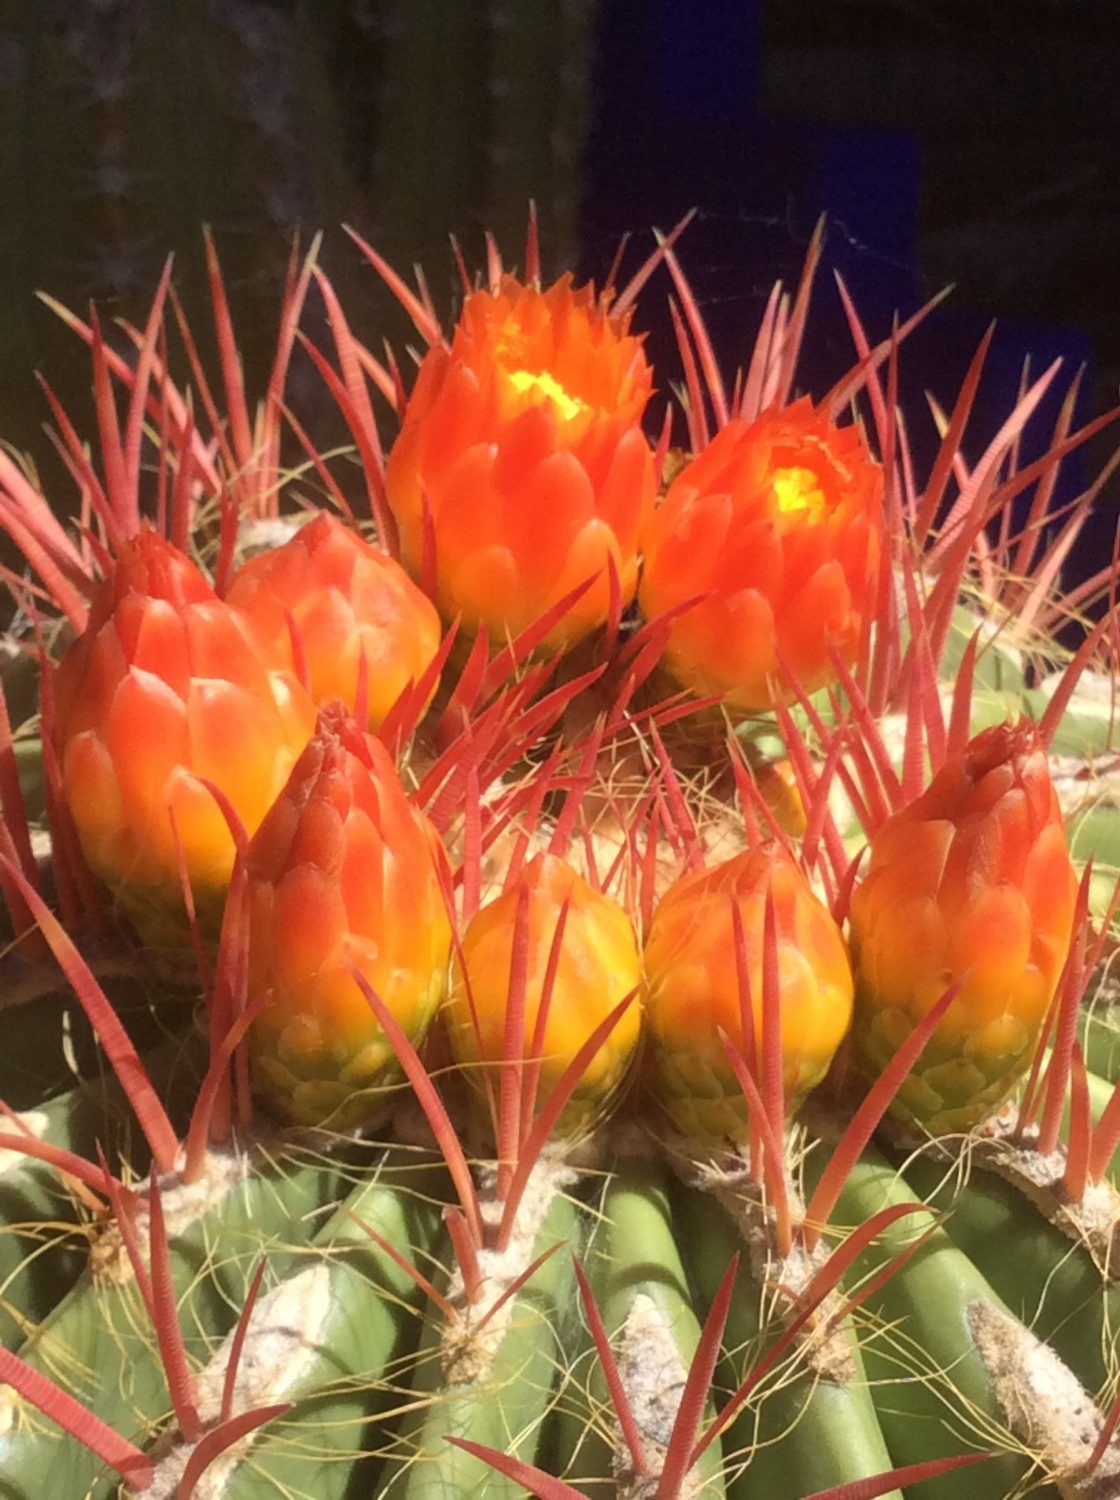 Many cactus originate from Mexico, a country rich in biodiversity